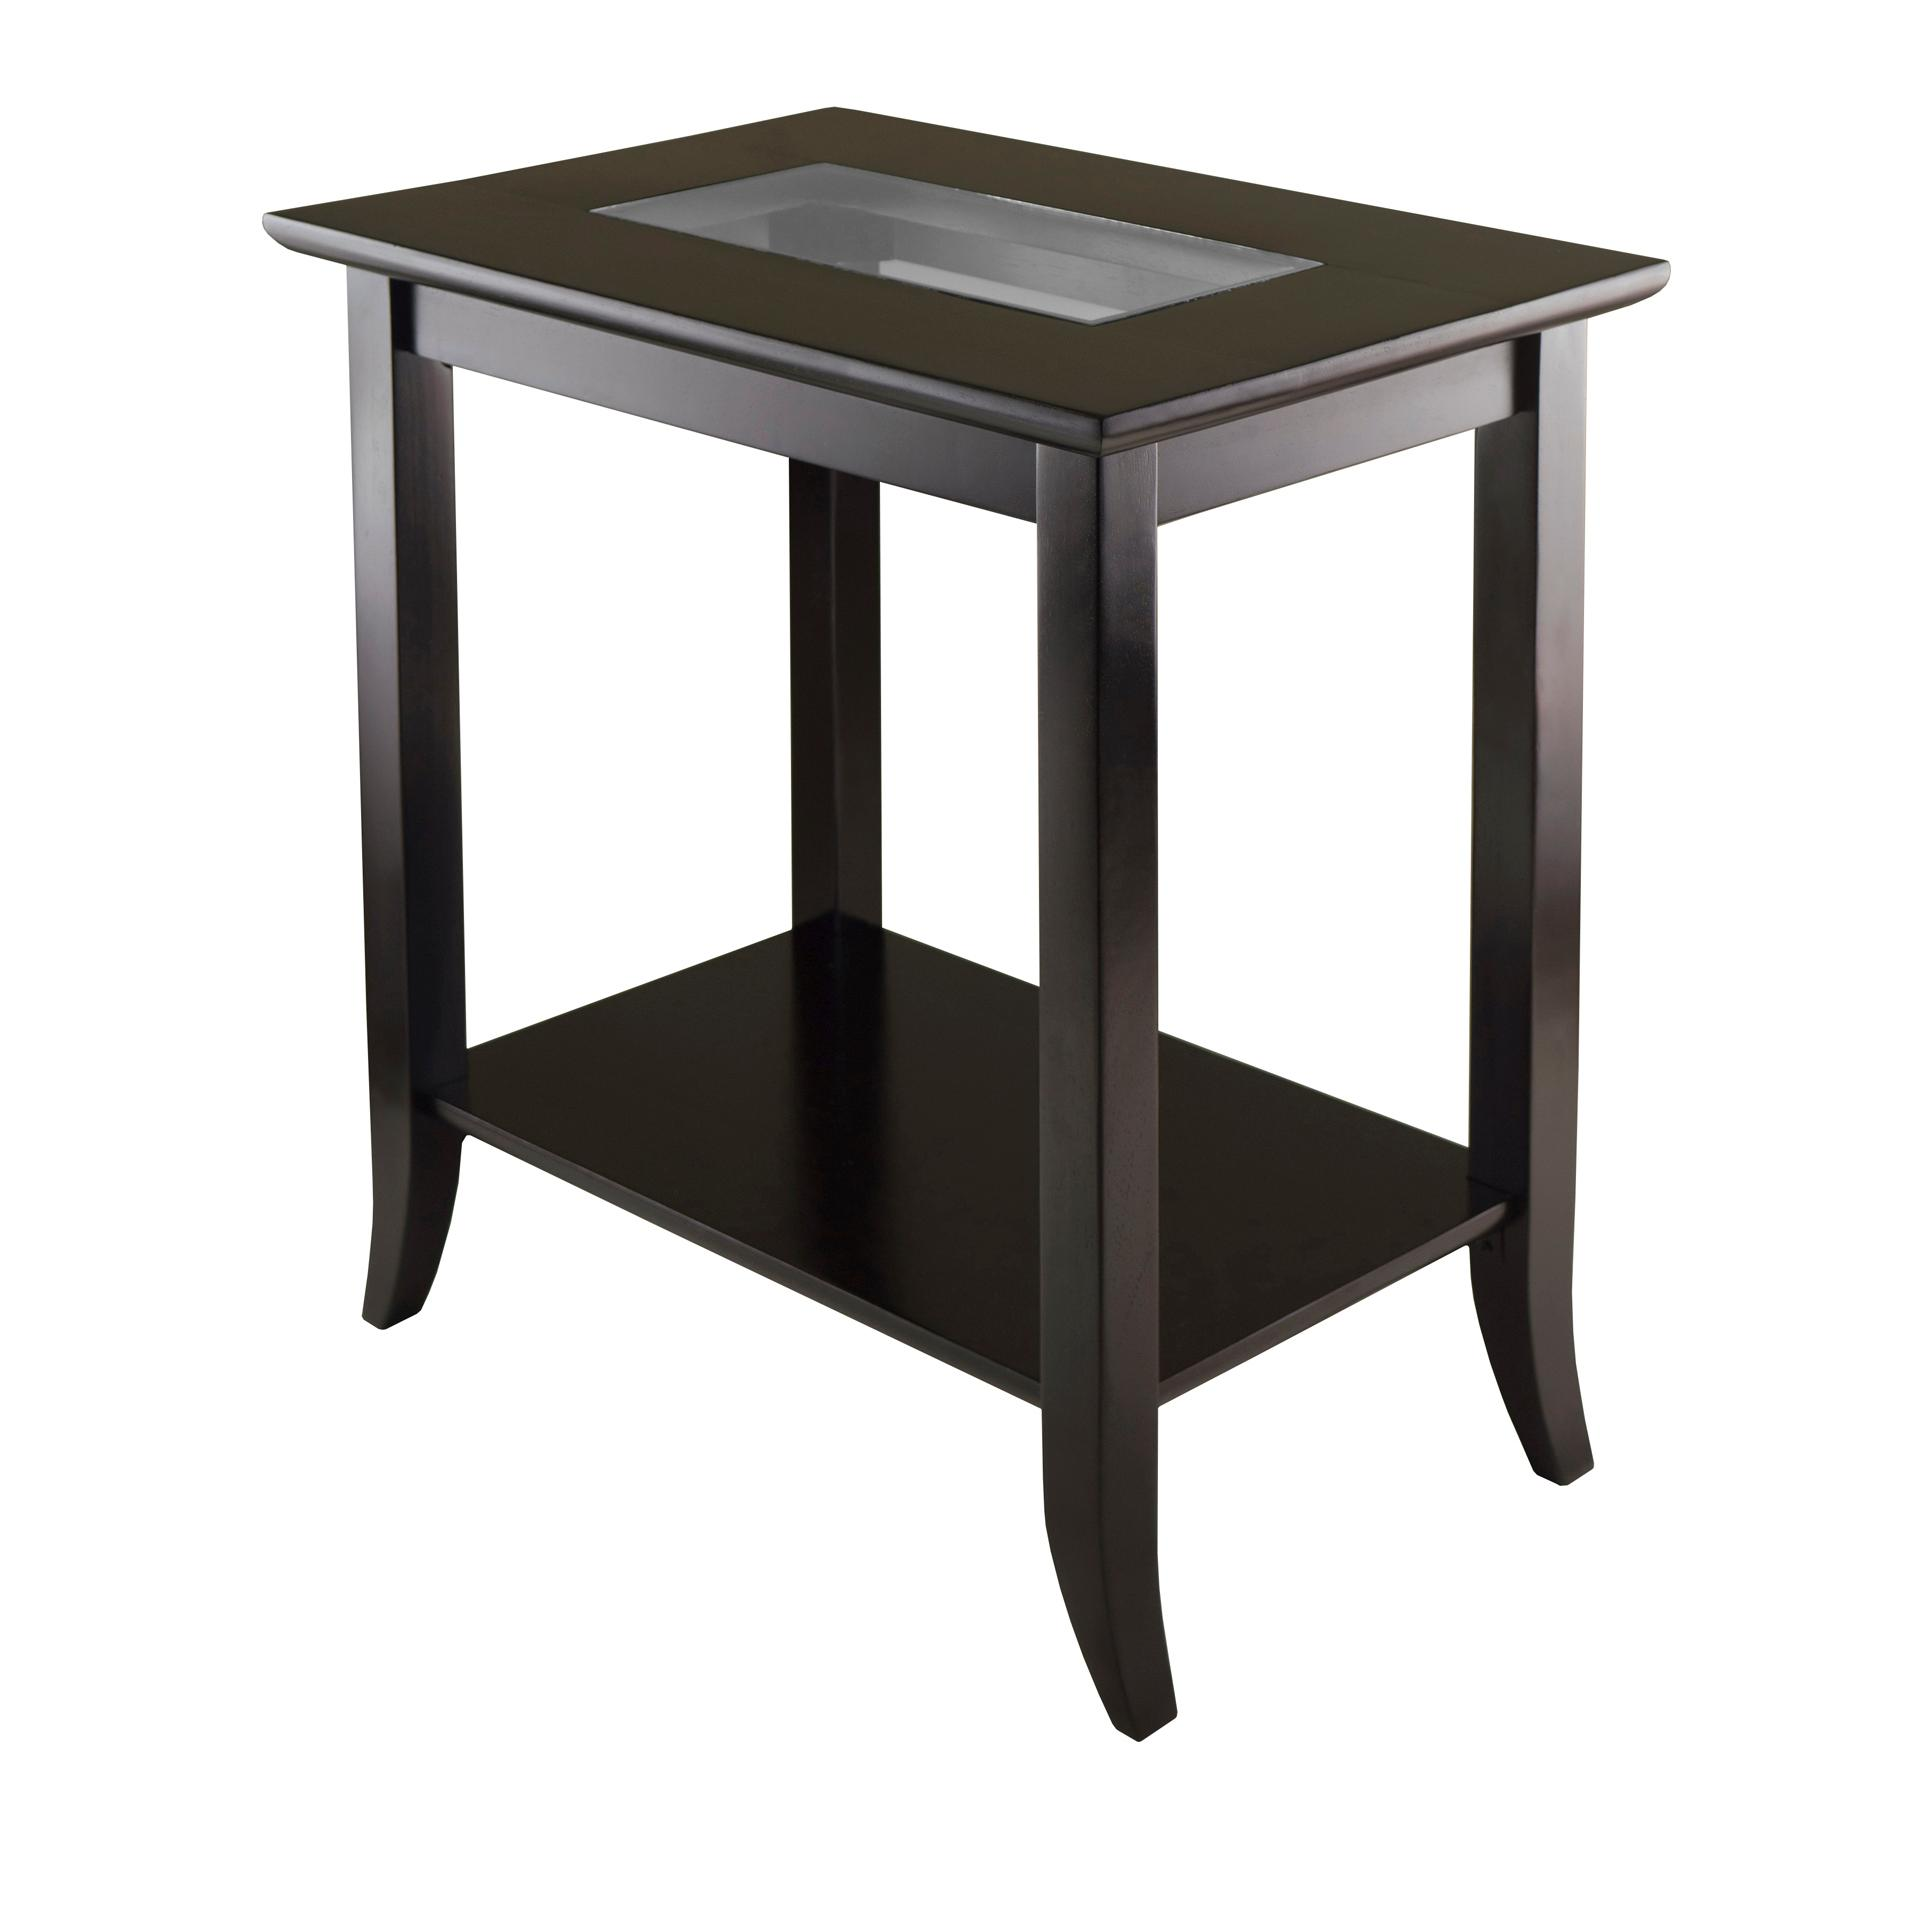 winsome wood genoa rectangular end table with glass top and shelf from the manufacturer ethan allen maple bedroom set tables for less riverside coventry furniture oval mesh patio